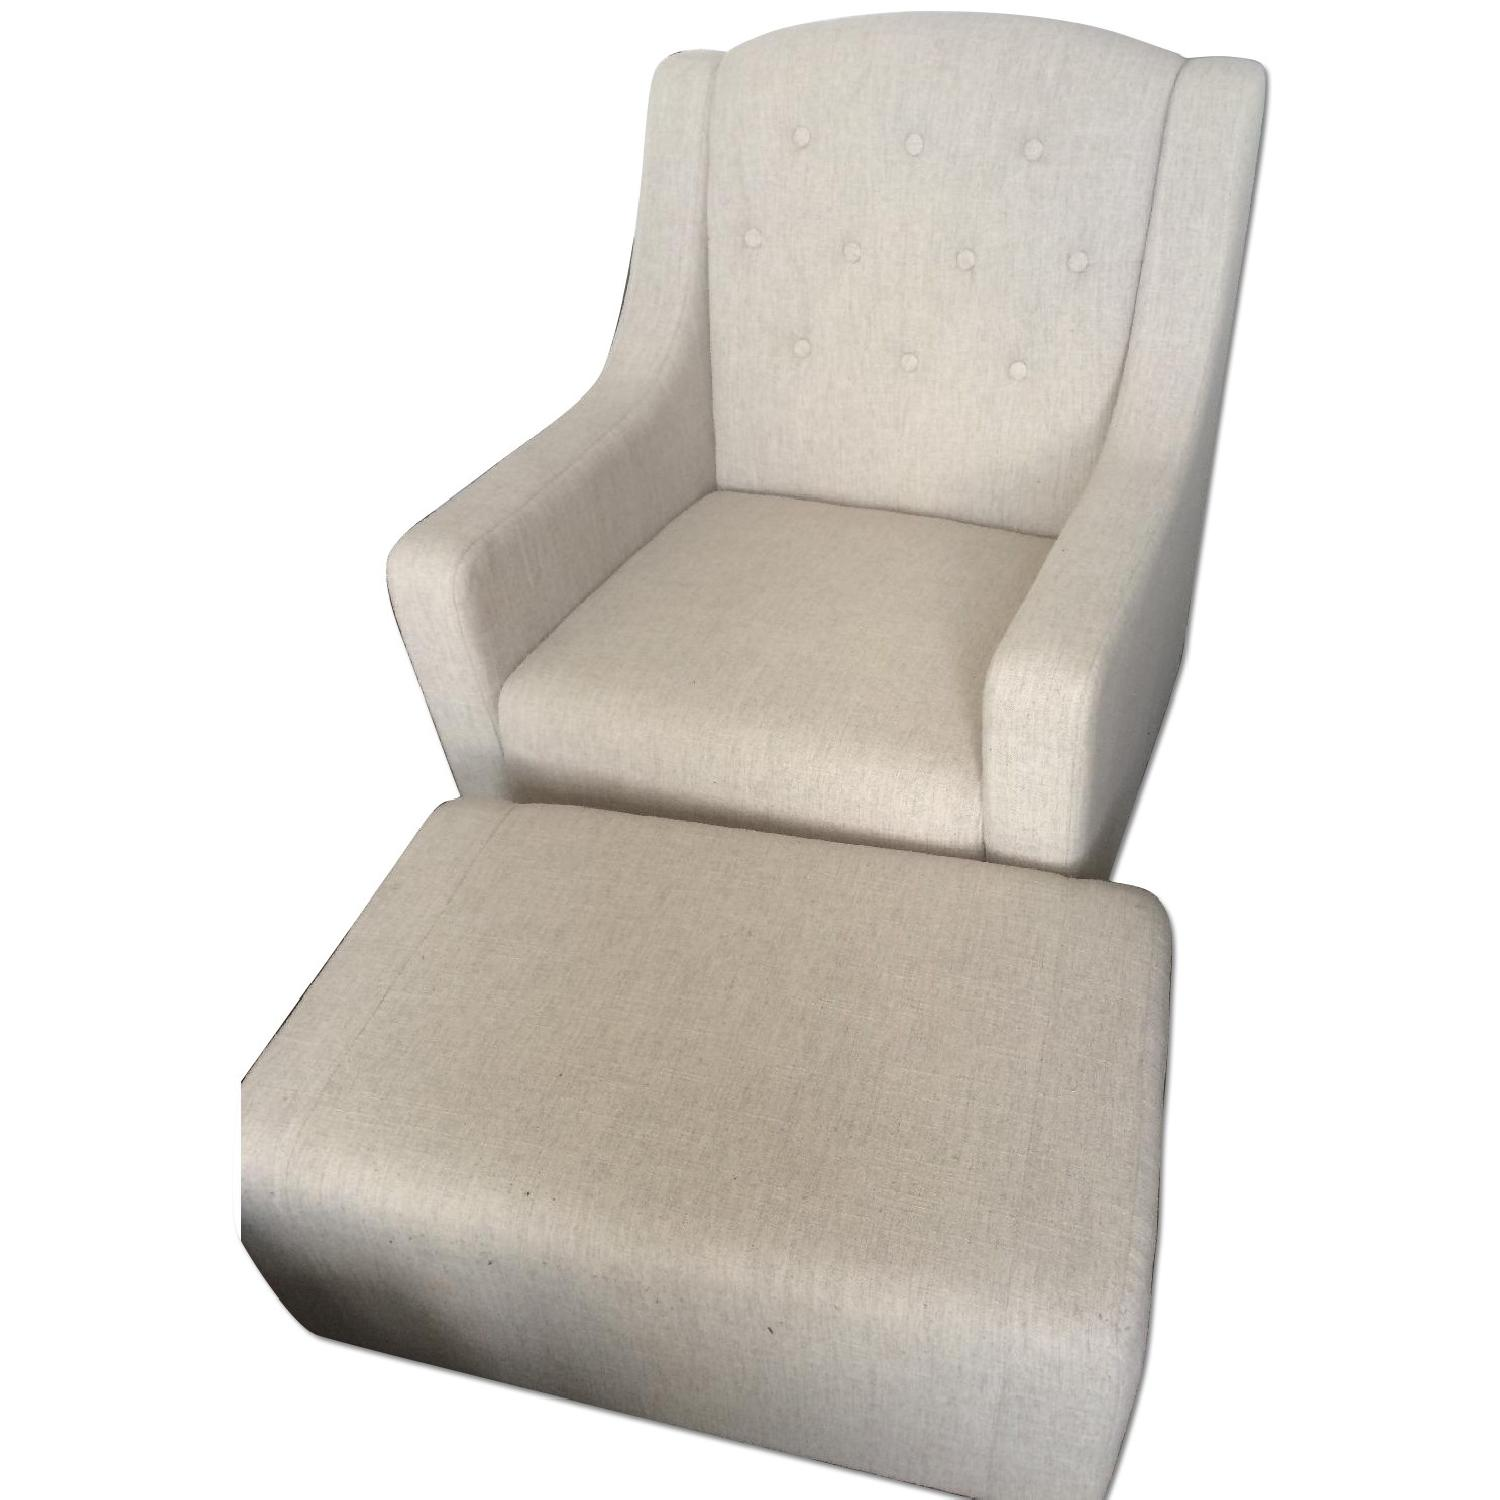 Three Posts Upholstered Club Arm Chair & Ottoman - image-0